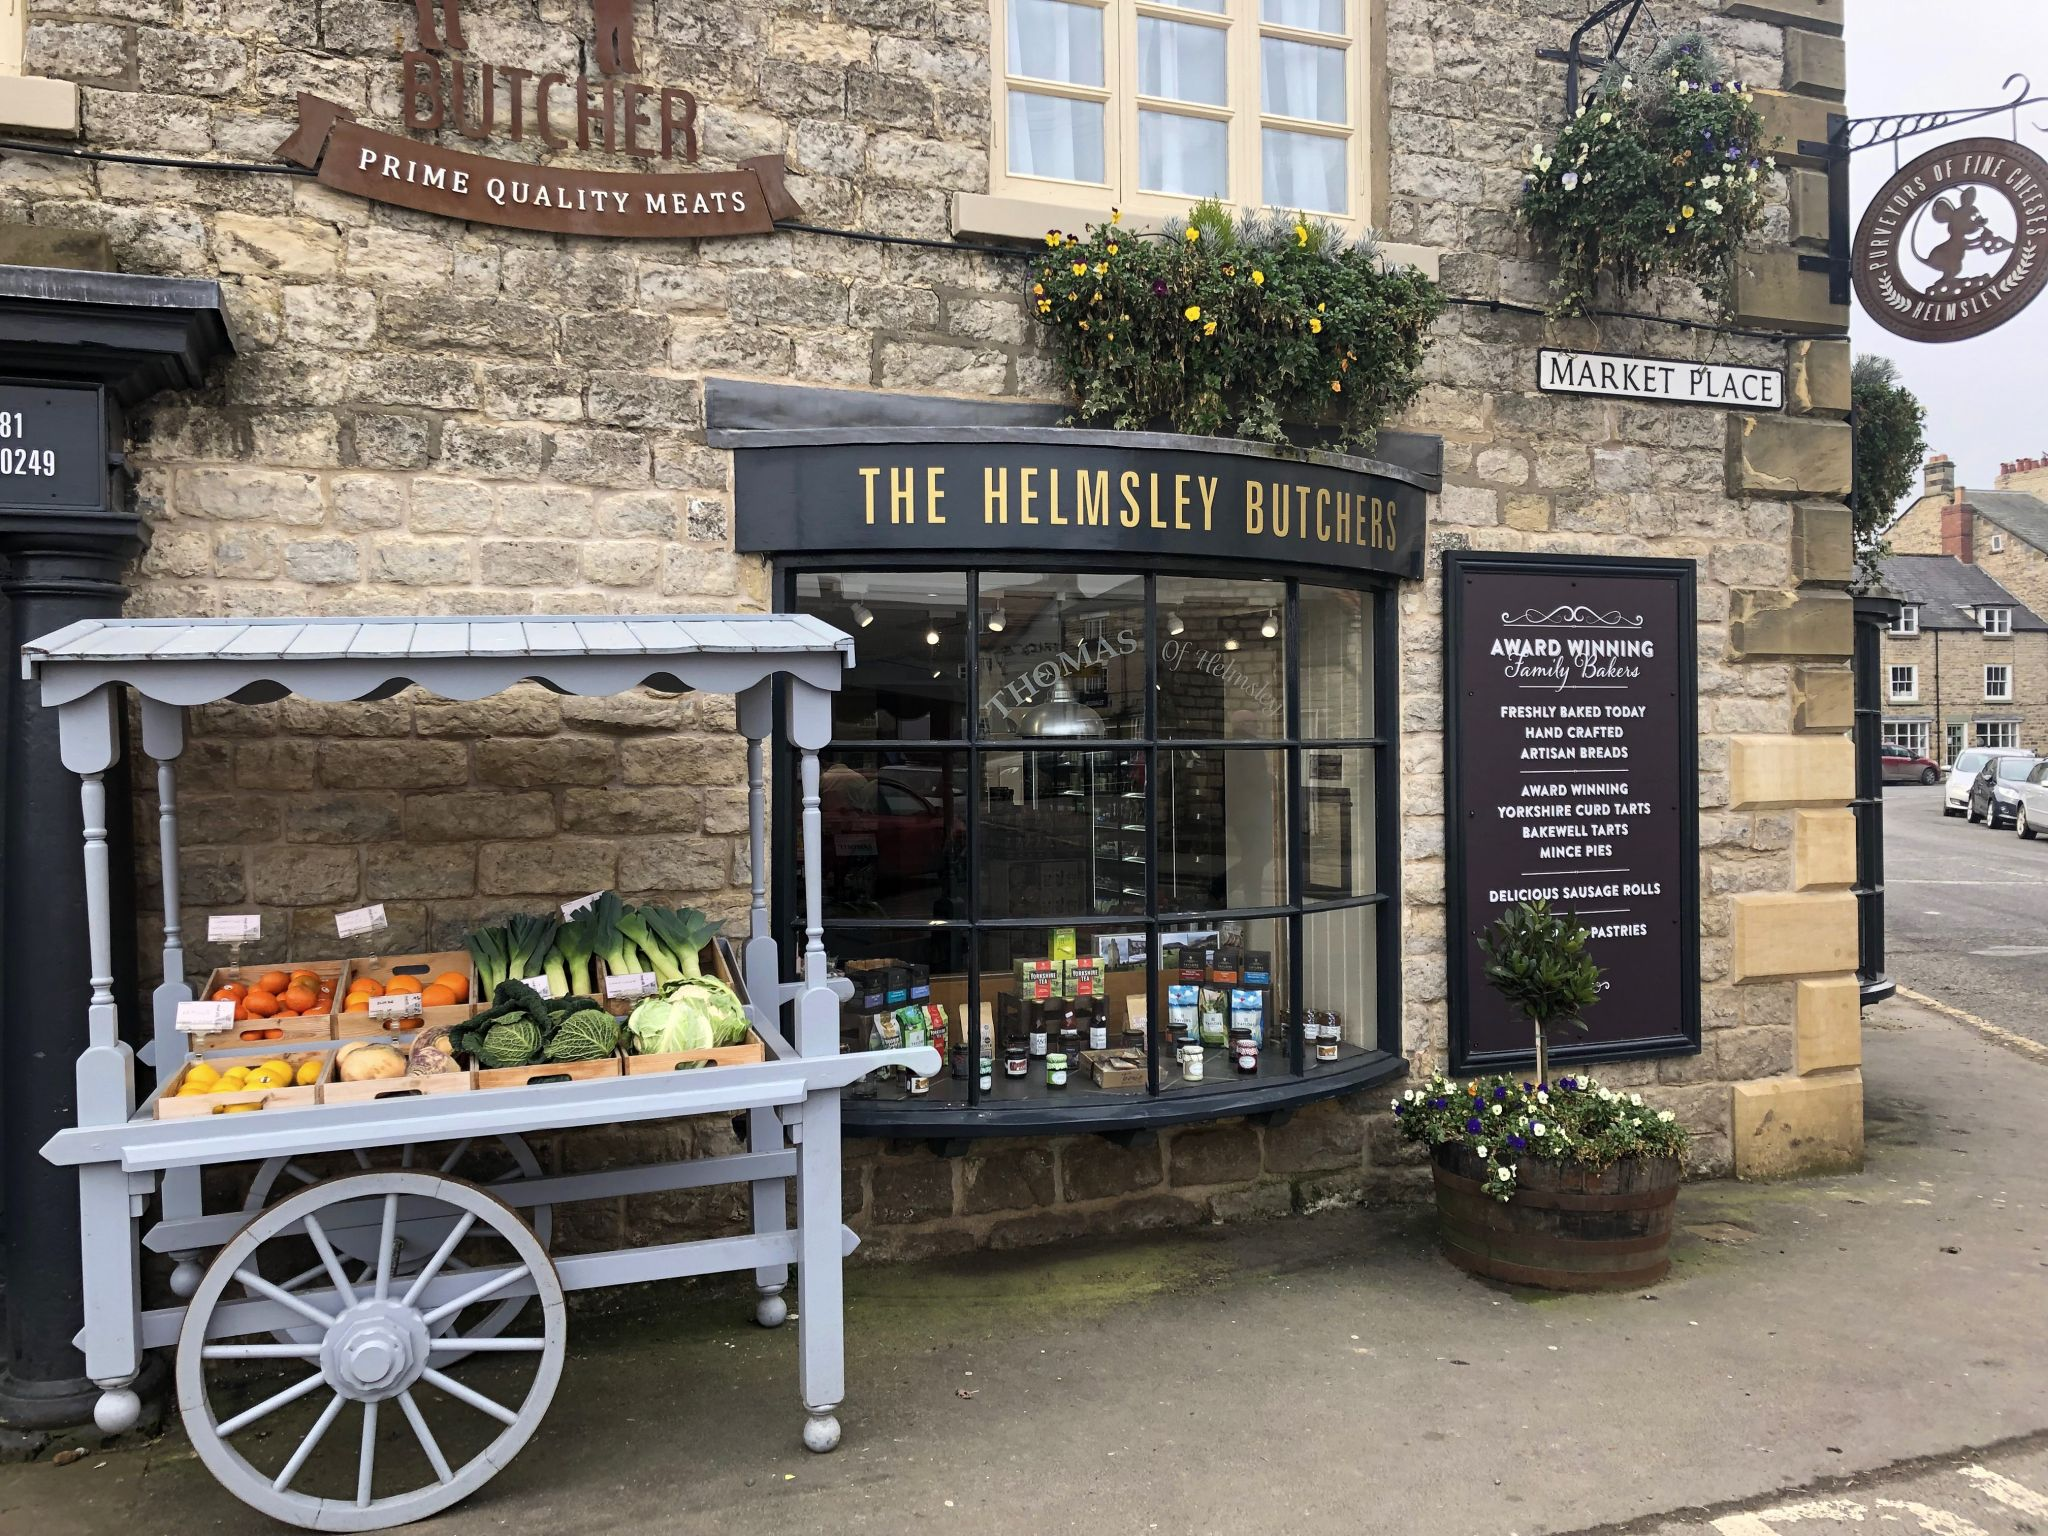 Things To Do In And Around Helmsley, North Yorkshire